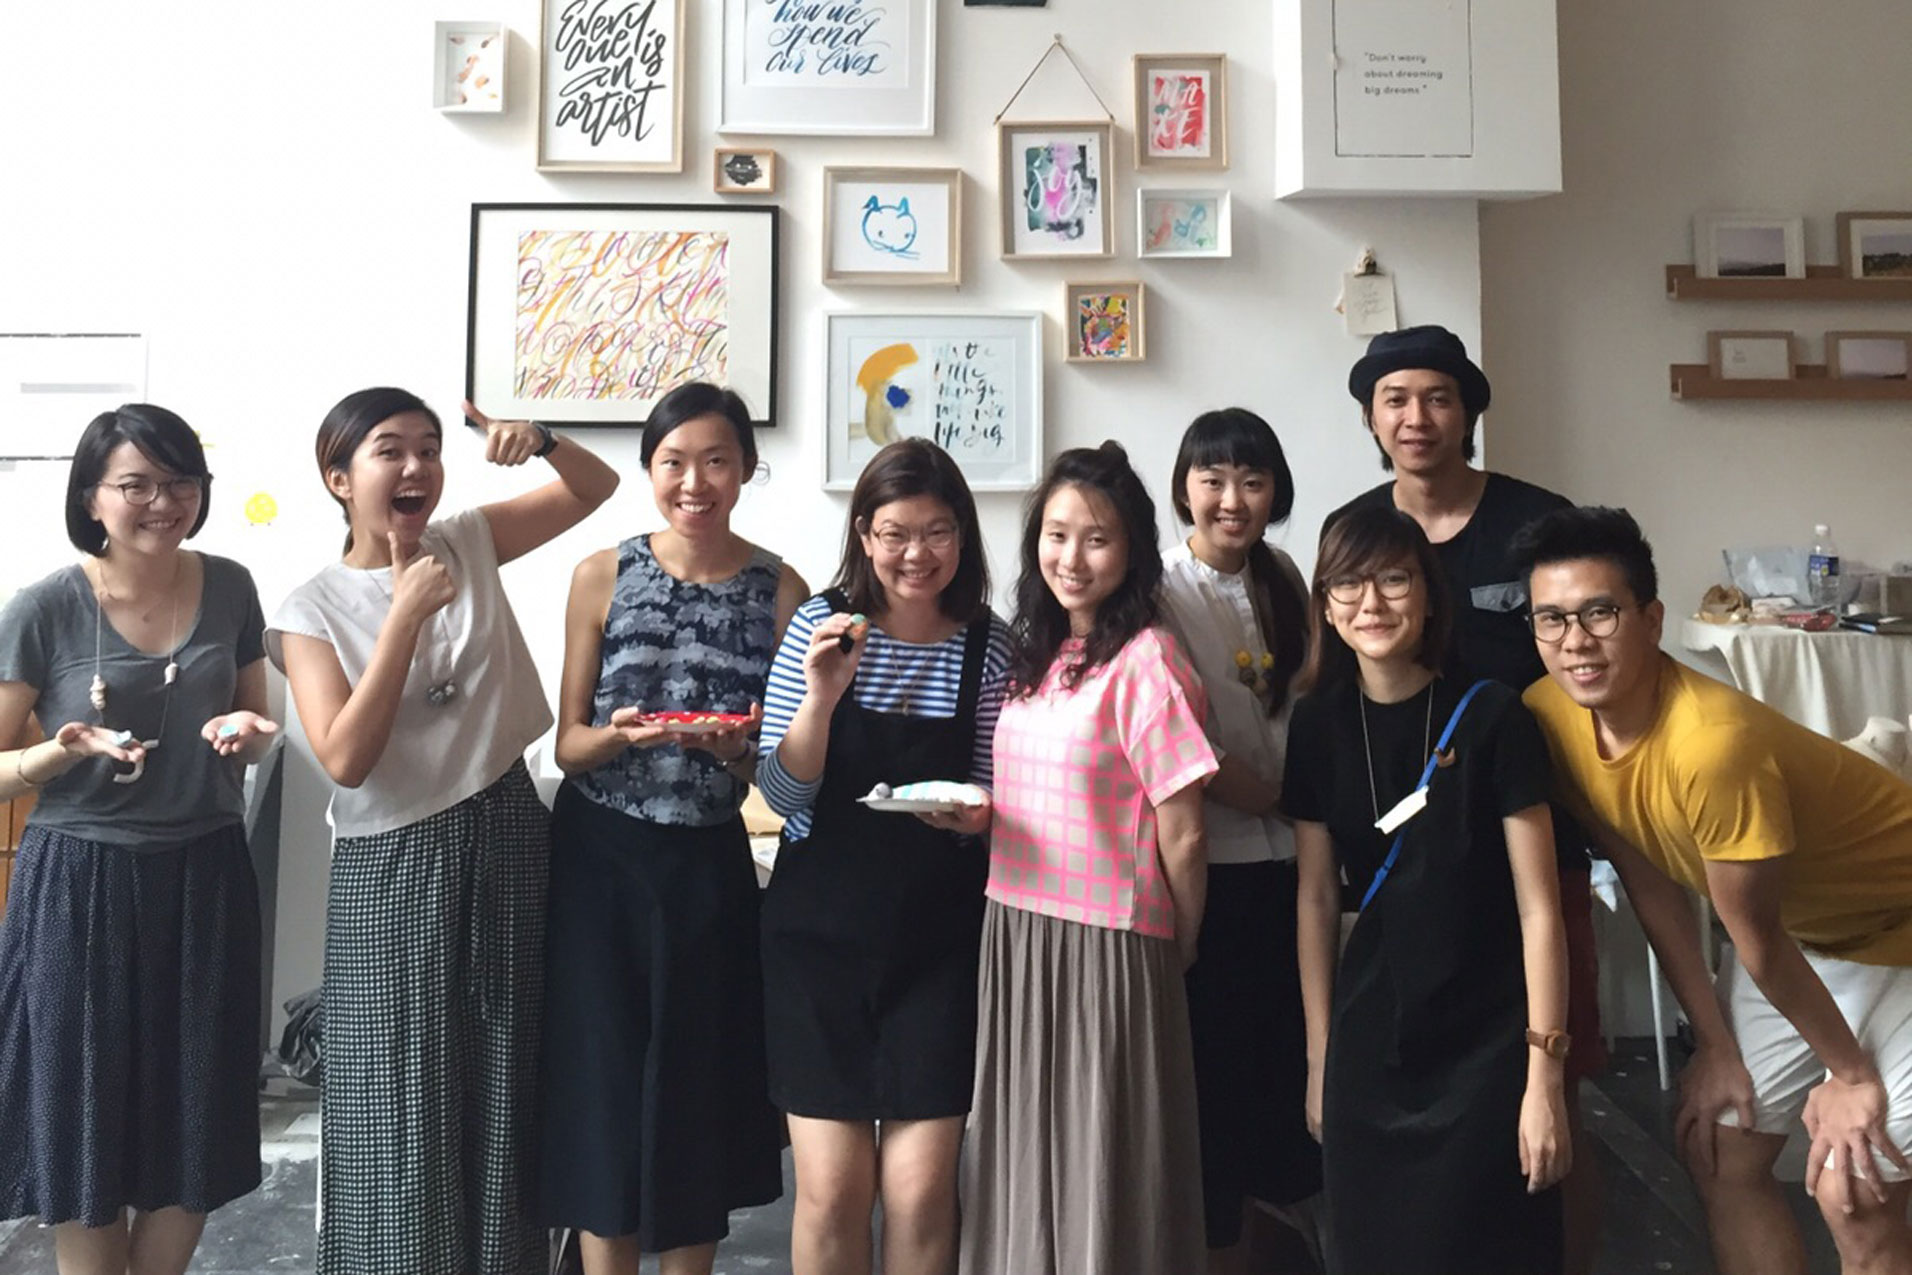 Private class held for artists-in-residence in Letter J Studio, who turned friends ;)